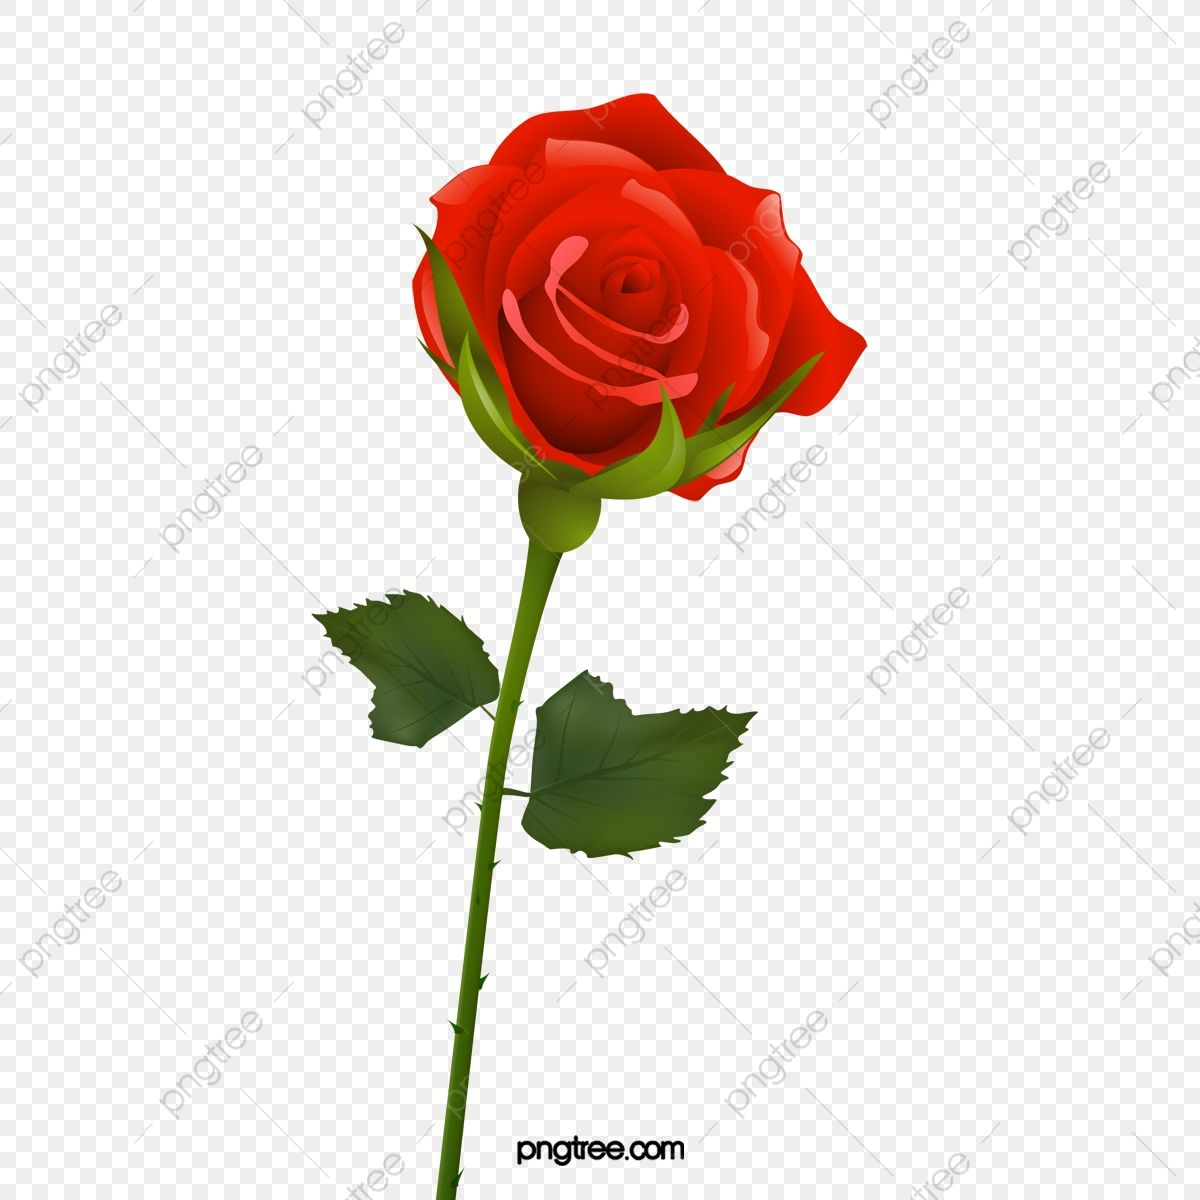 A Rose With Thorns Barbed Flowers Rose Png Transparent Clipart Image And Psd File For Free Download Rose Clipart Rose Thorns Rose